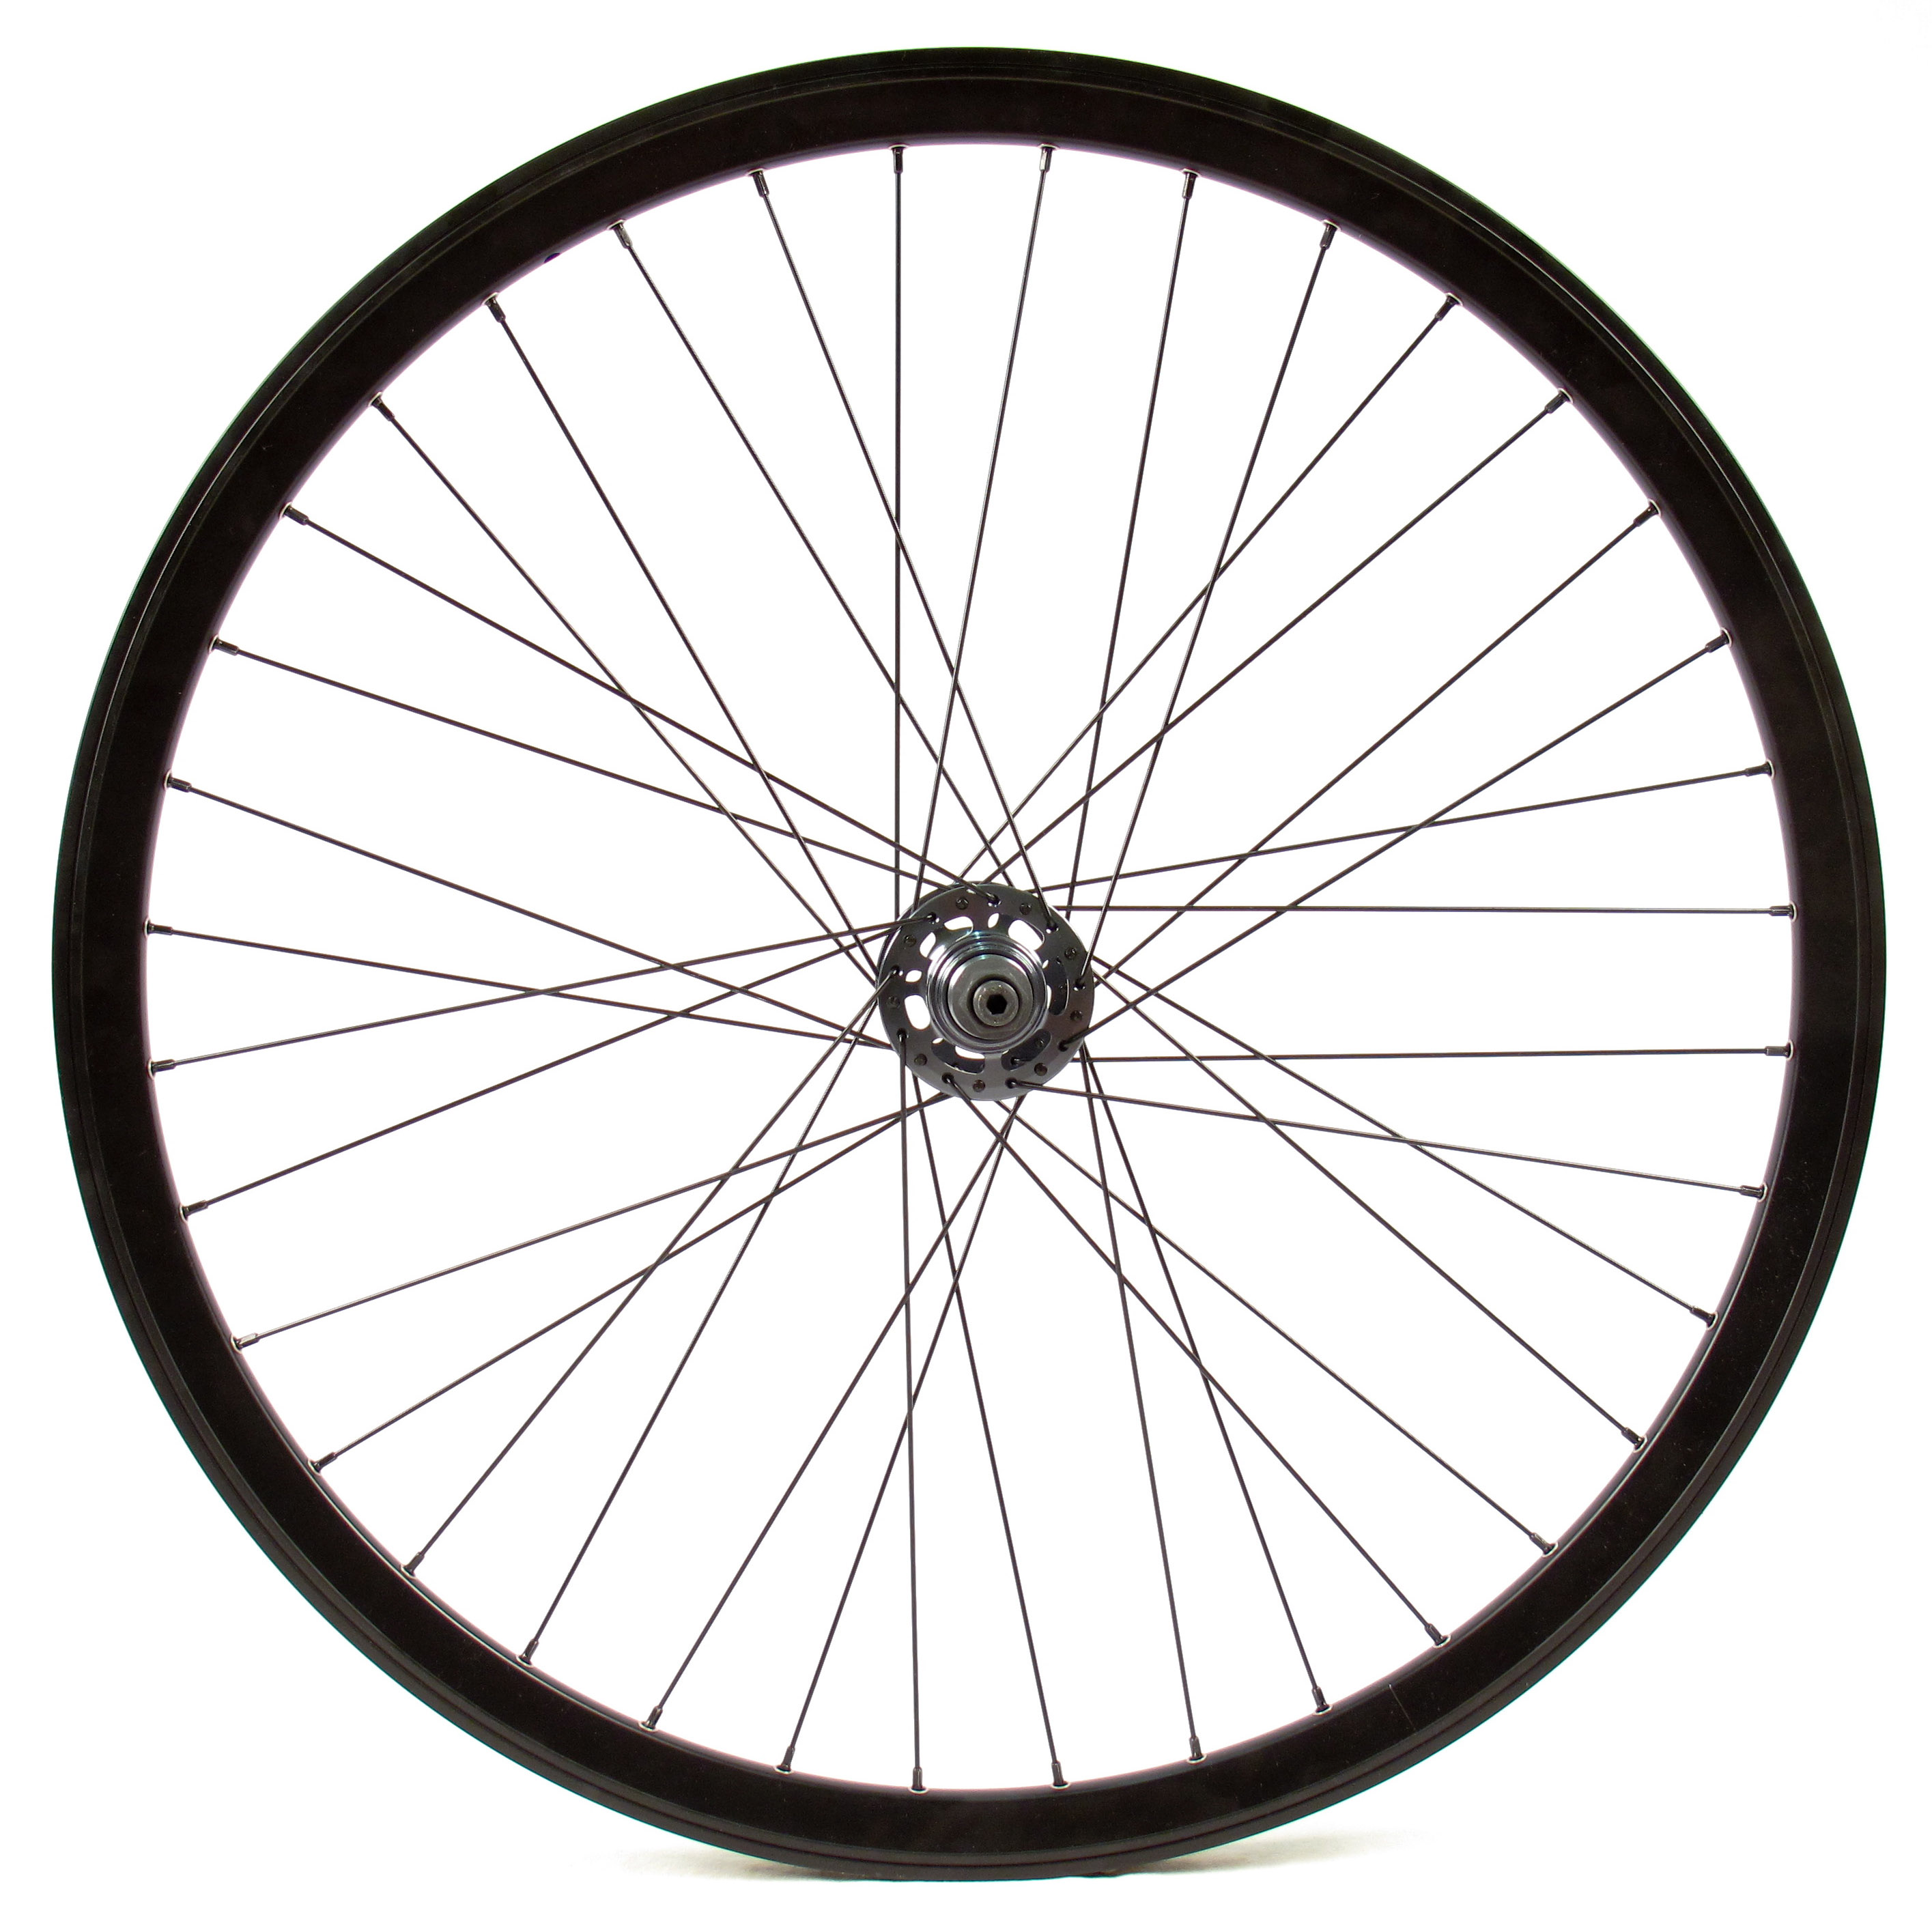 Bicycle Wheelbdpd9.